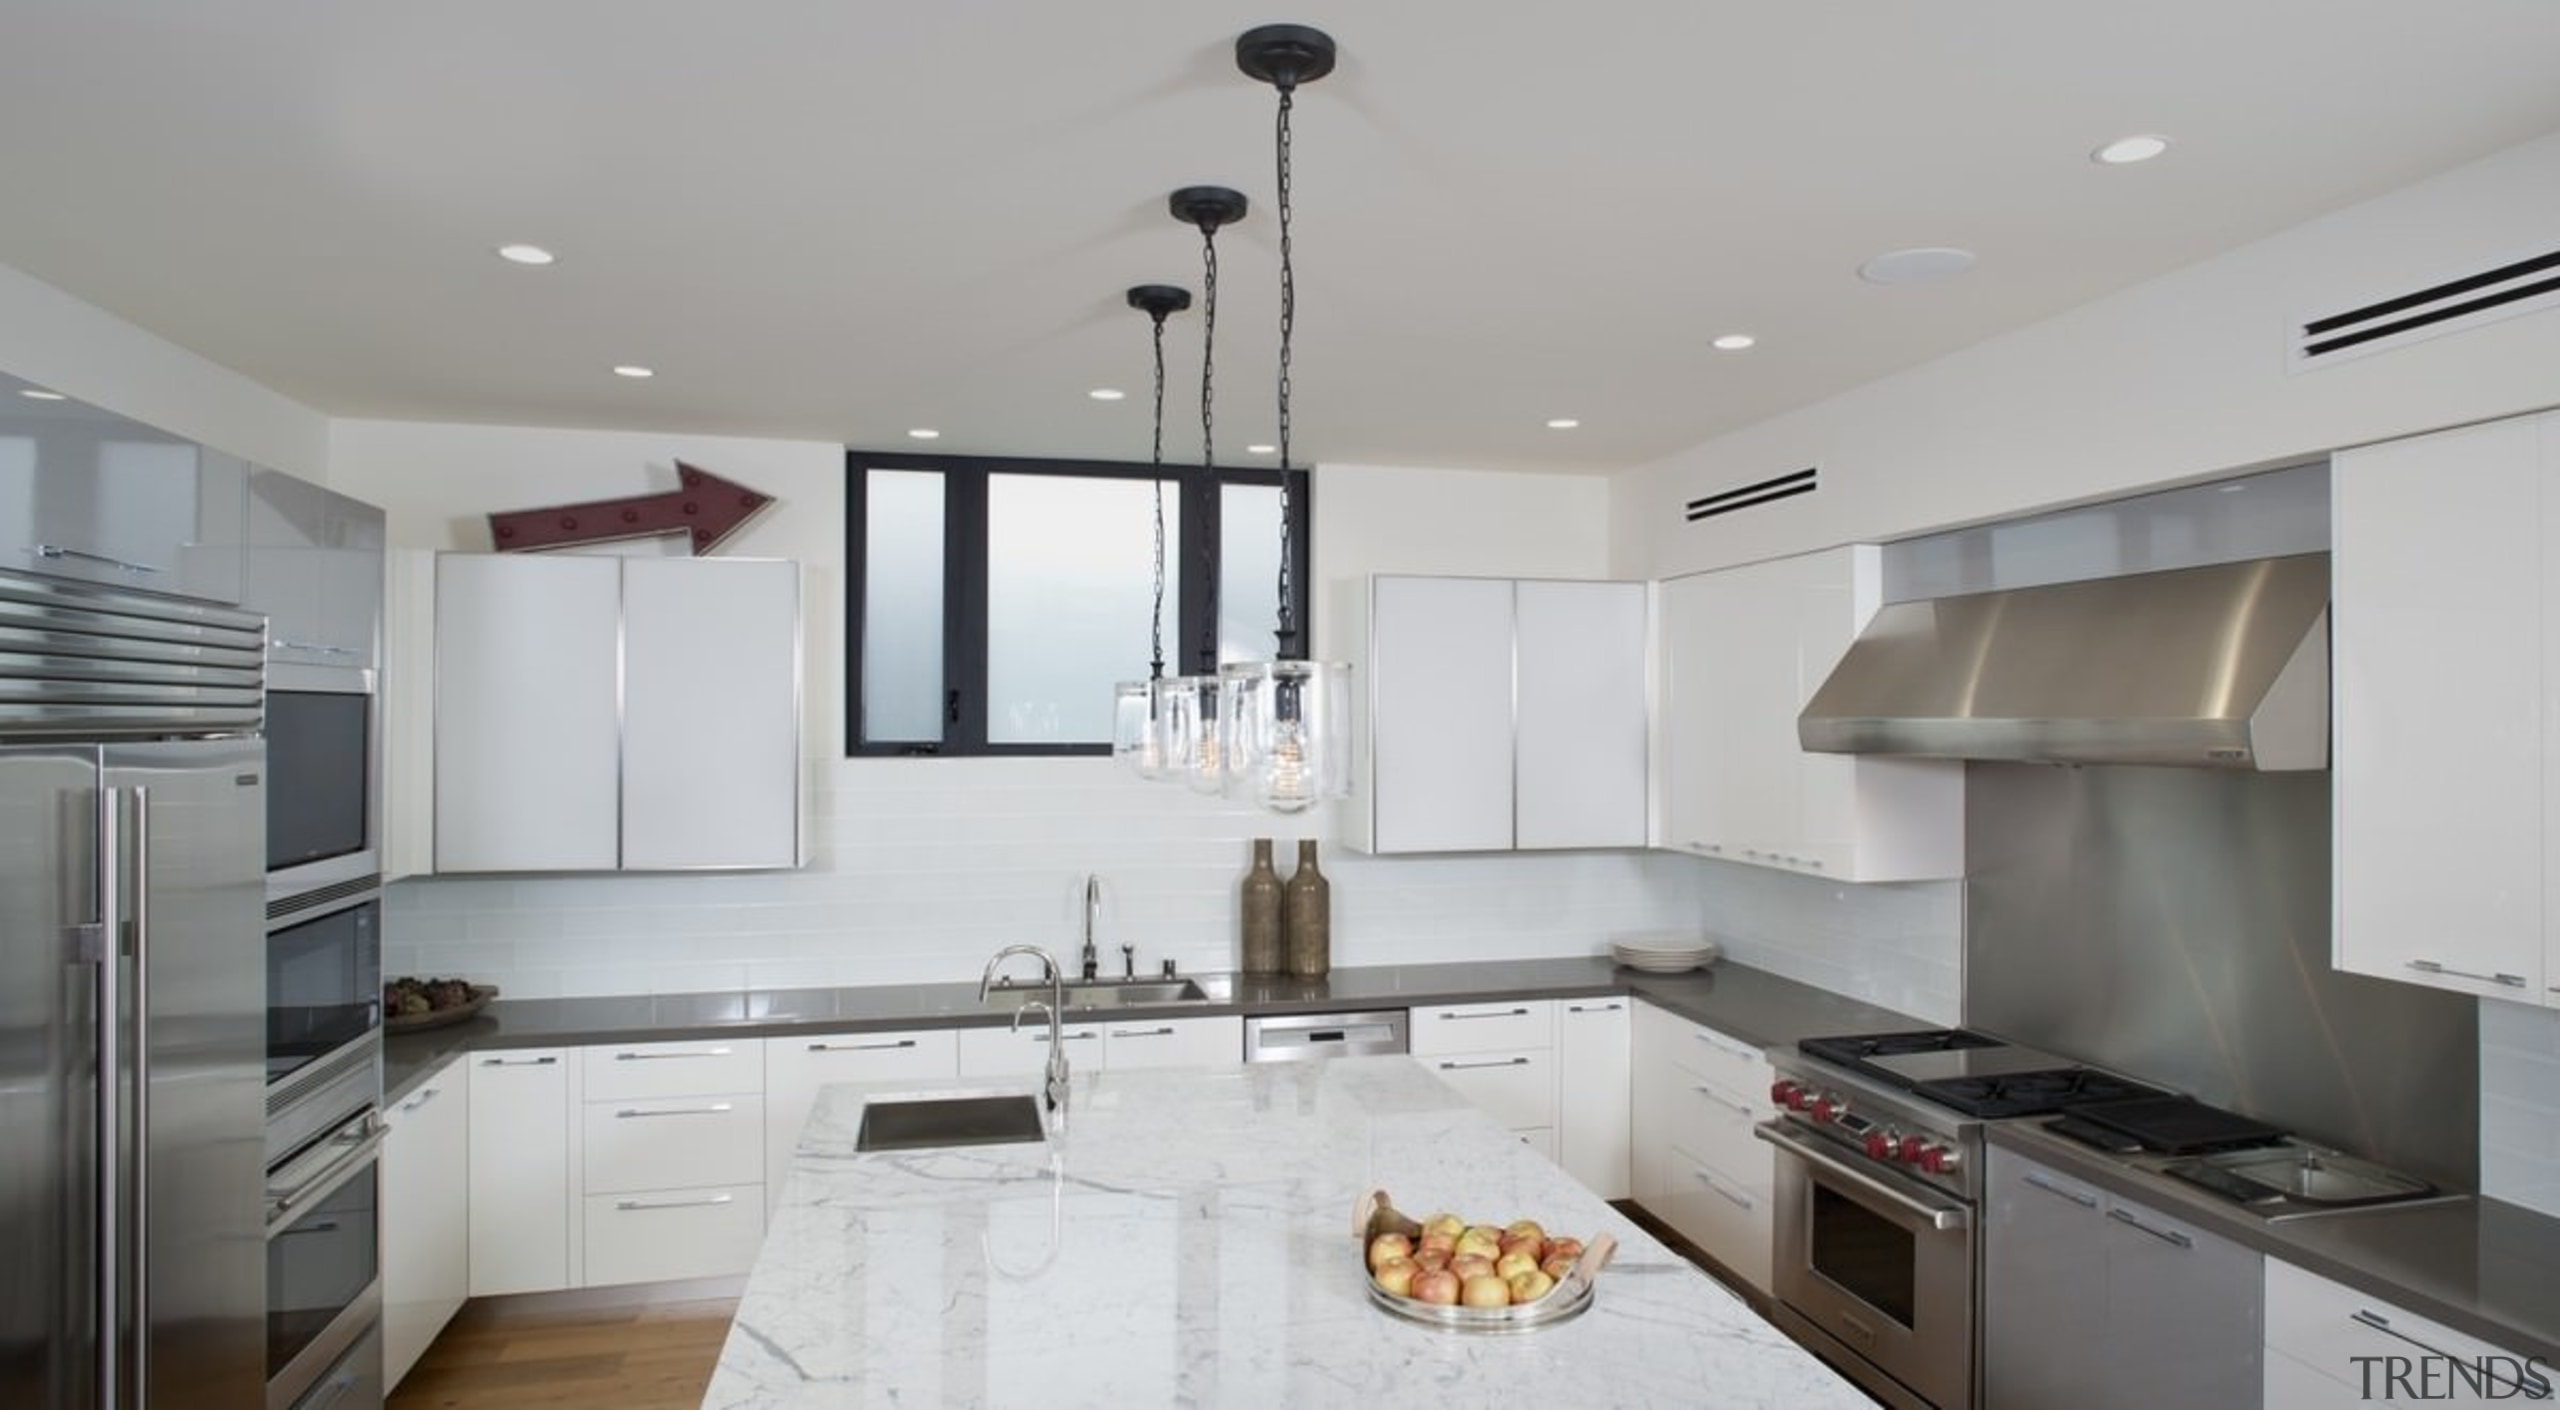 The perfect kitchen for entertaining? - The perfect cabinetry, countertop, cuisine classique, interior design, kitchen, property, real estate, room, gray